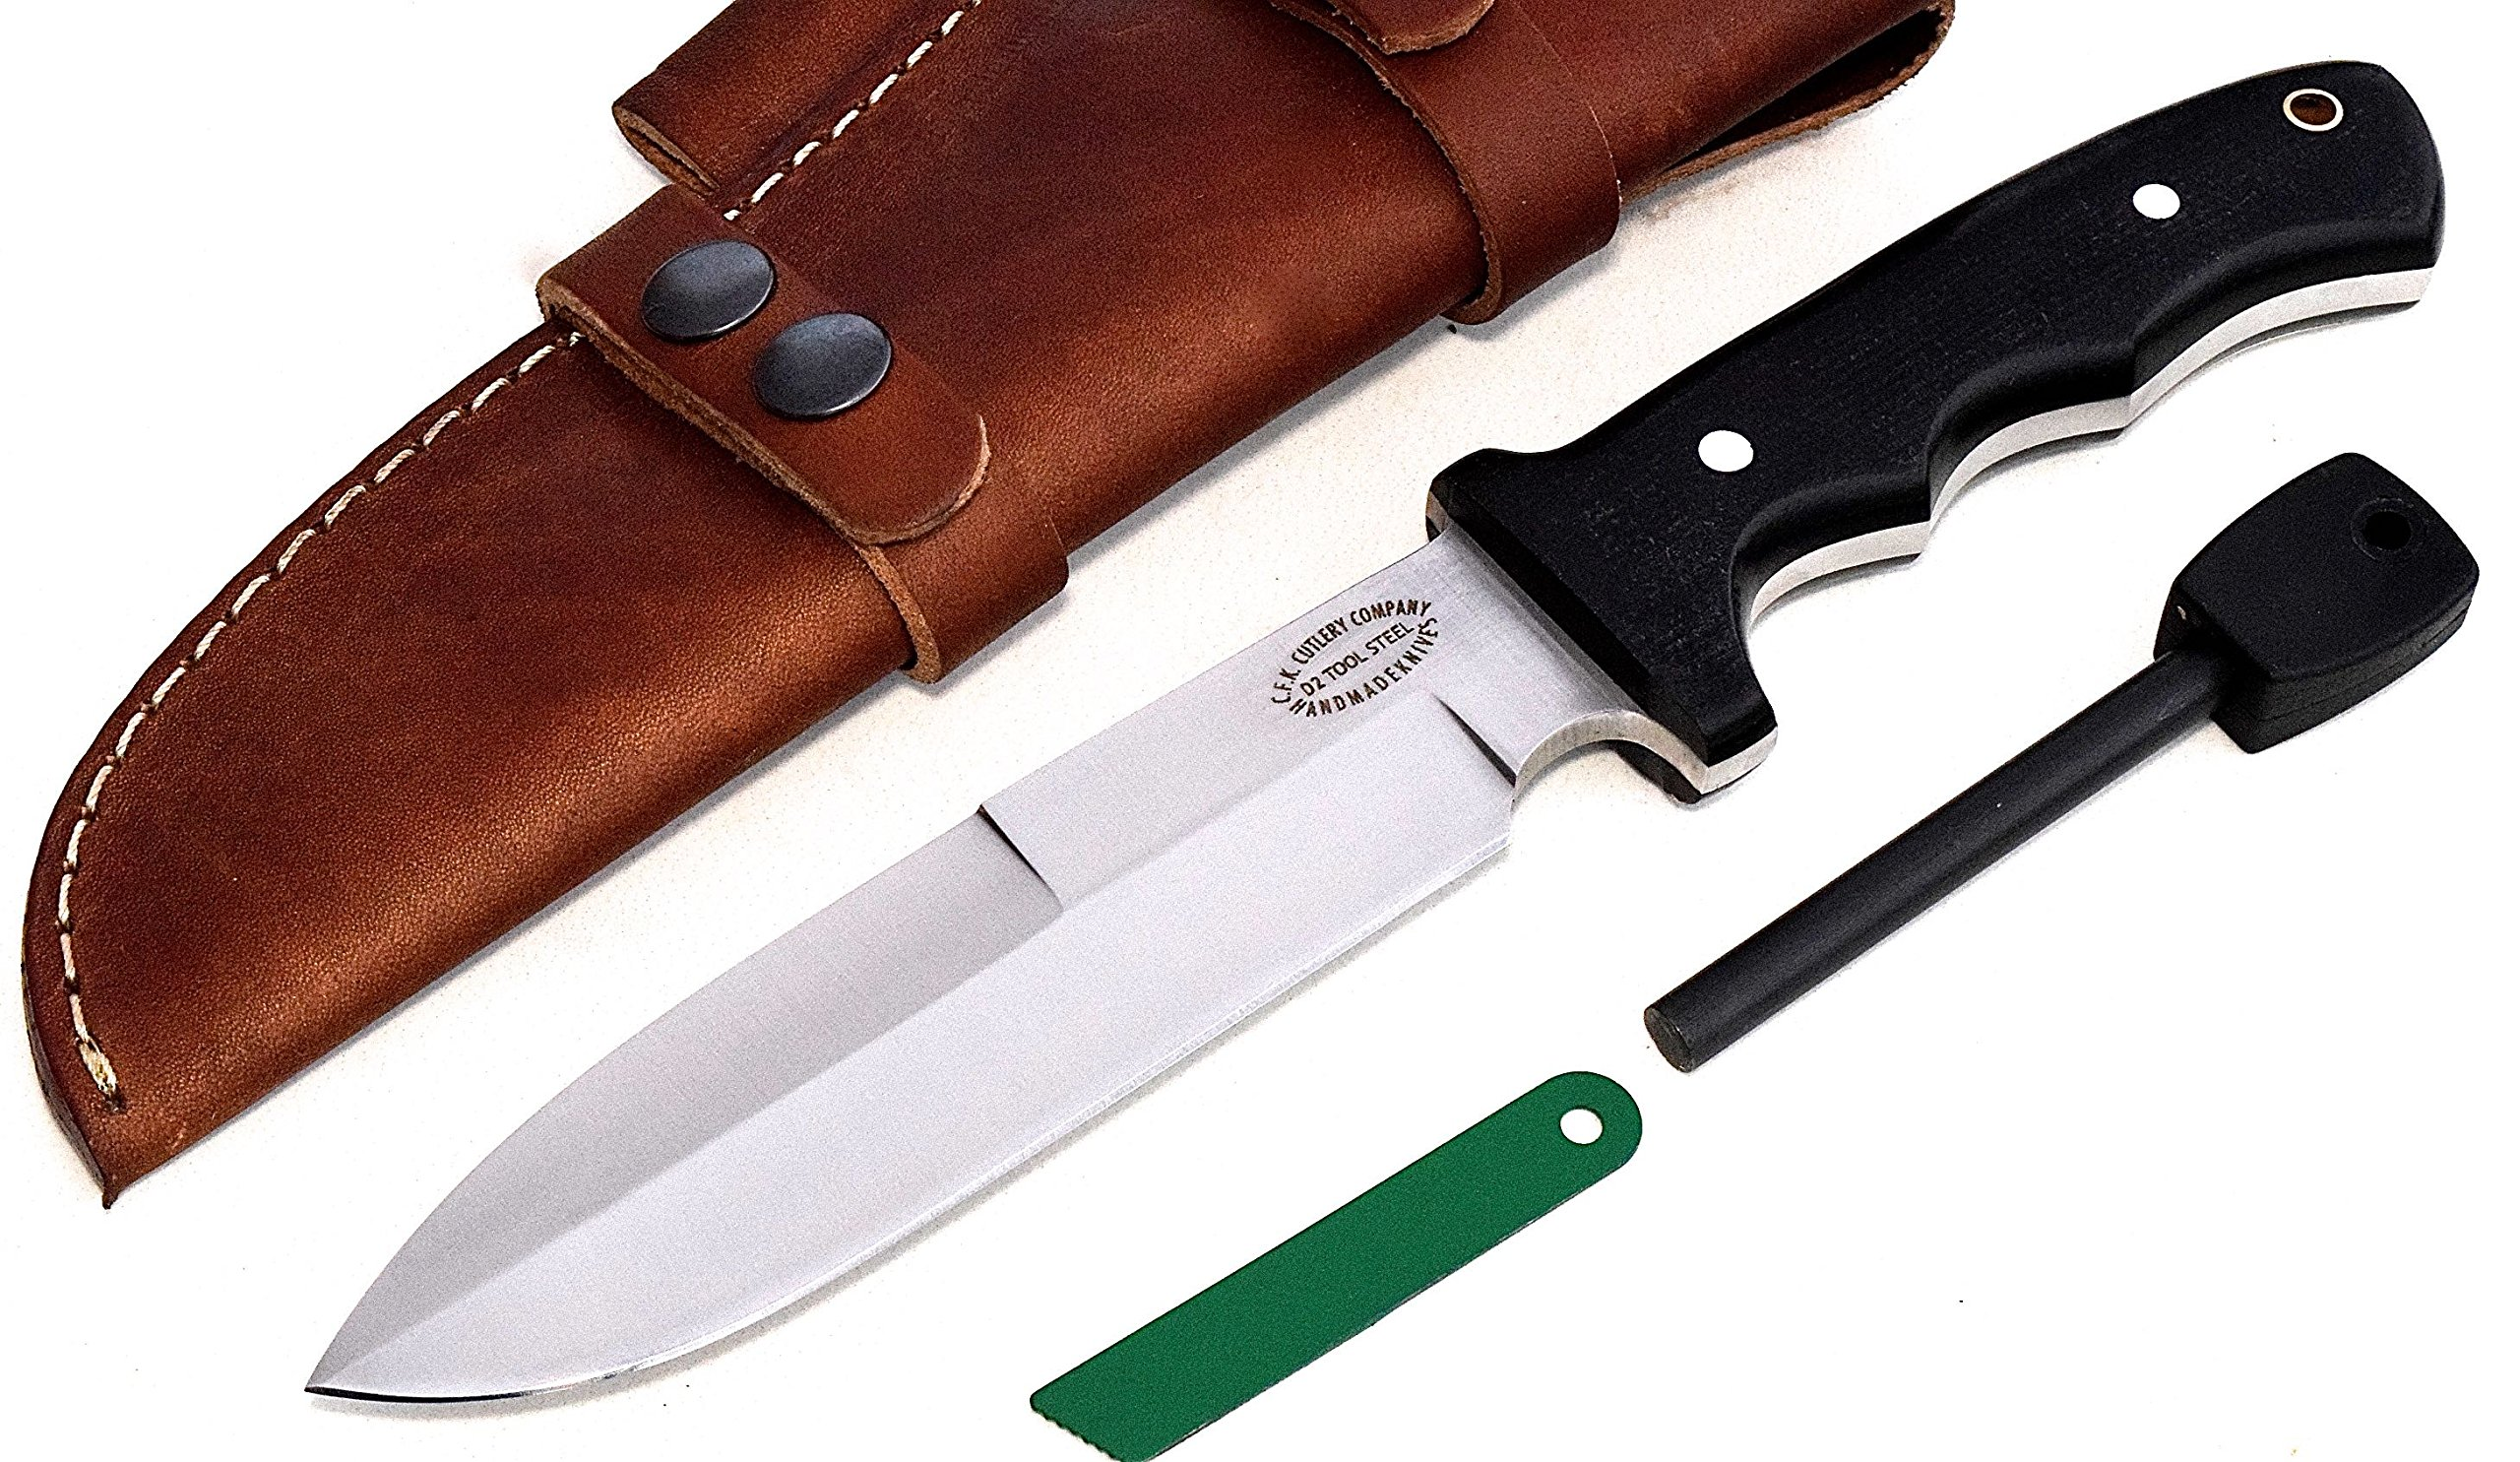 CFK Cutlery Company USA Micarta D2 Tool Steel Battle Shark Bushcraft Tactical Hunting Knife with Leather Sheath & Fire Starter Rod Set CFK111 by CFK Cutlery Company (Image #1)